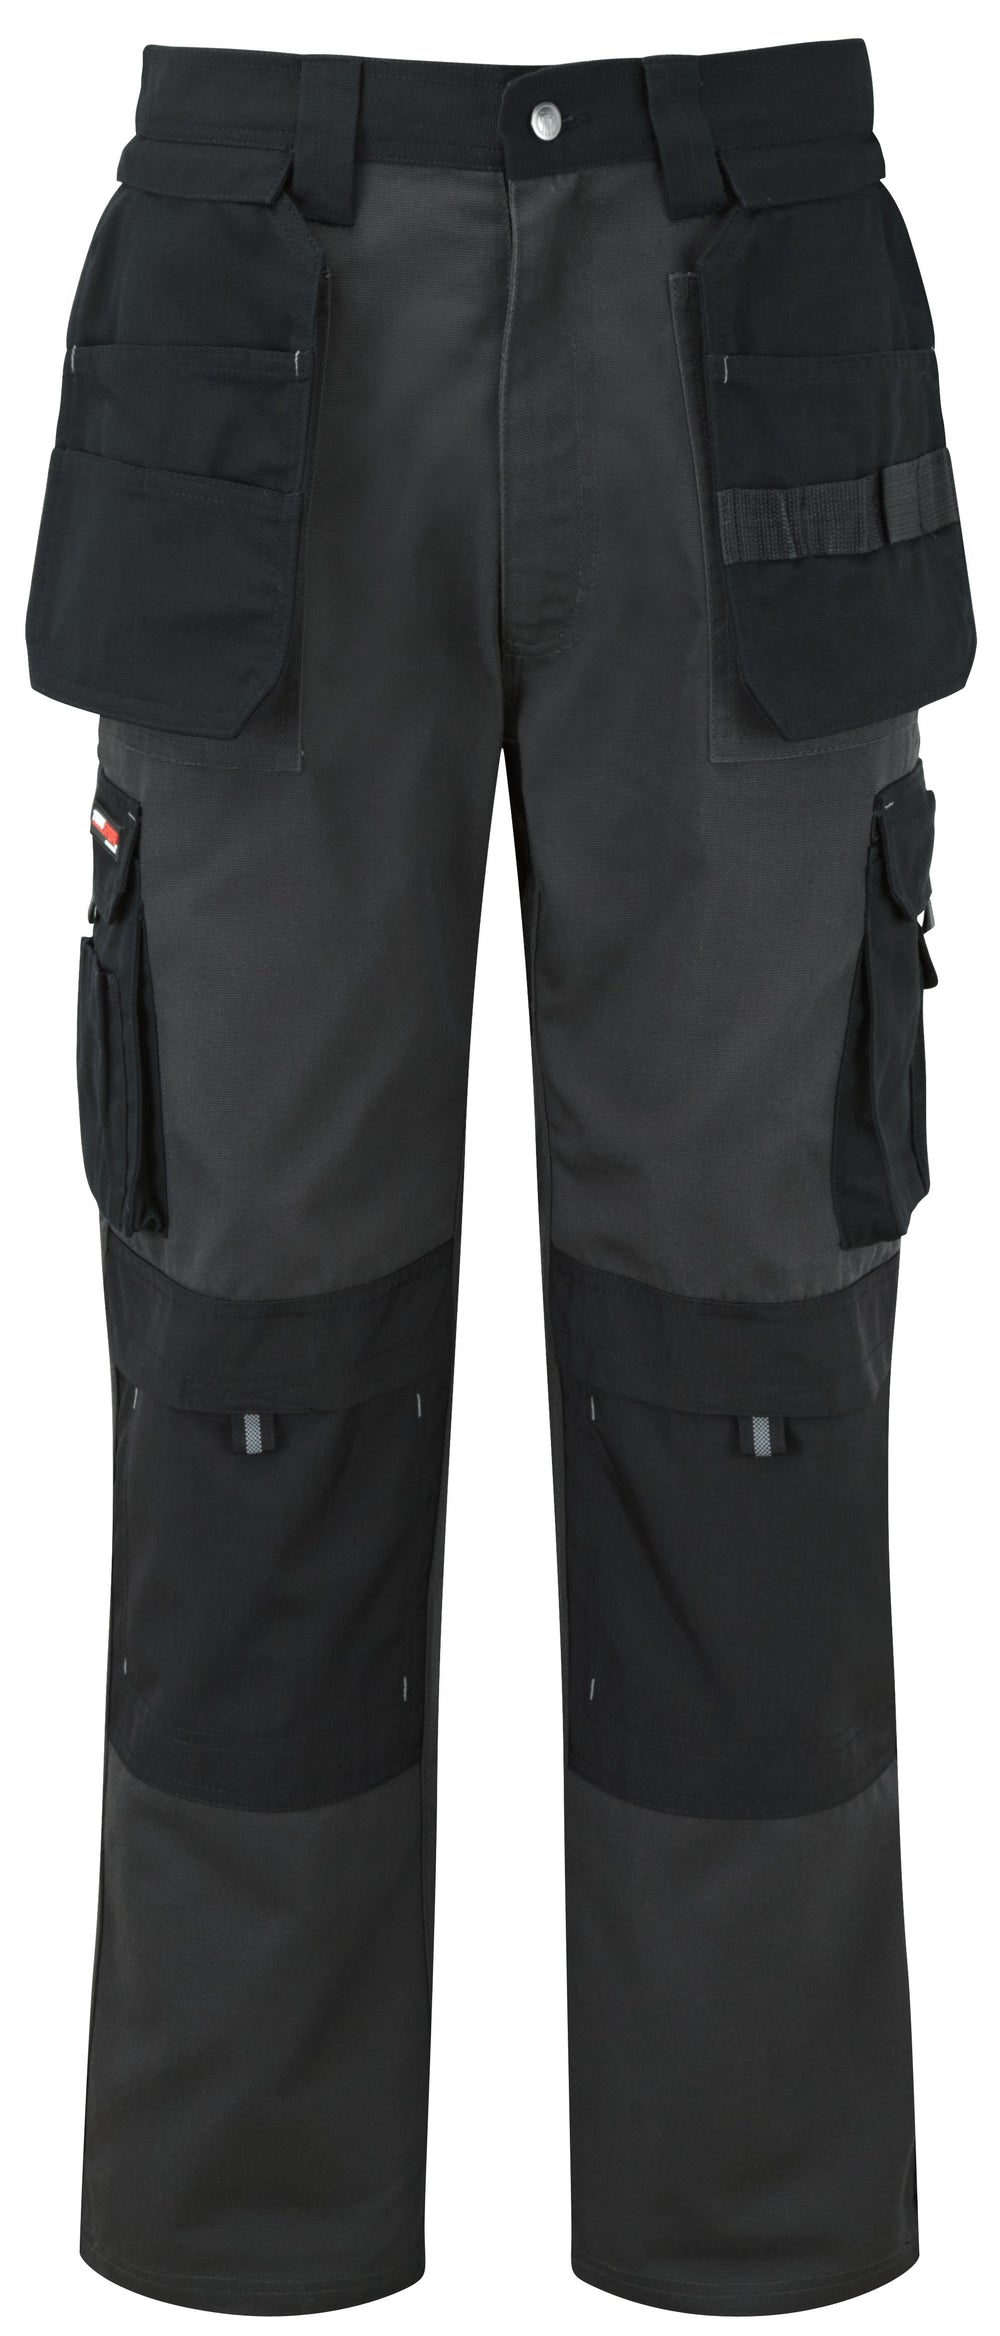 Tuffstuff 700 Extreme Work Trousers